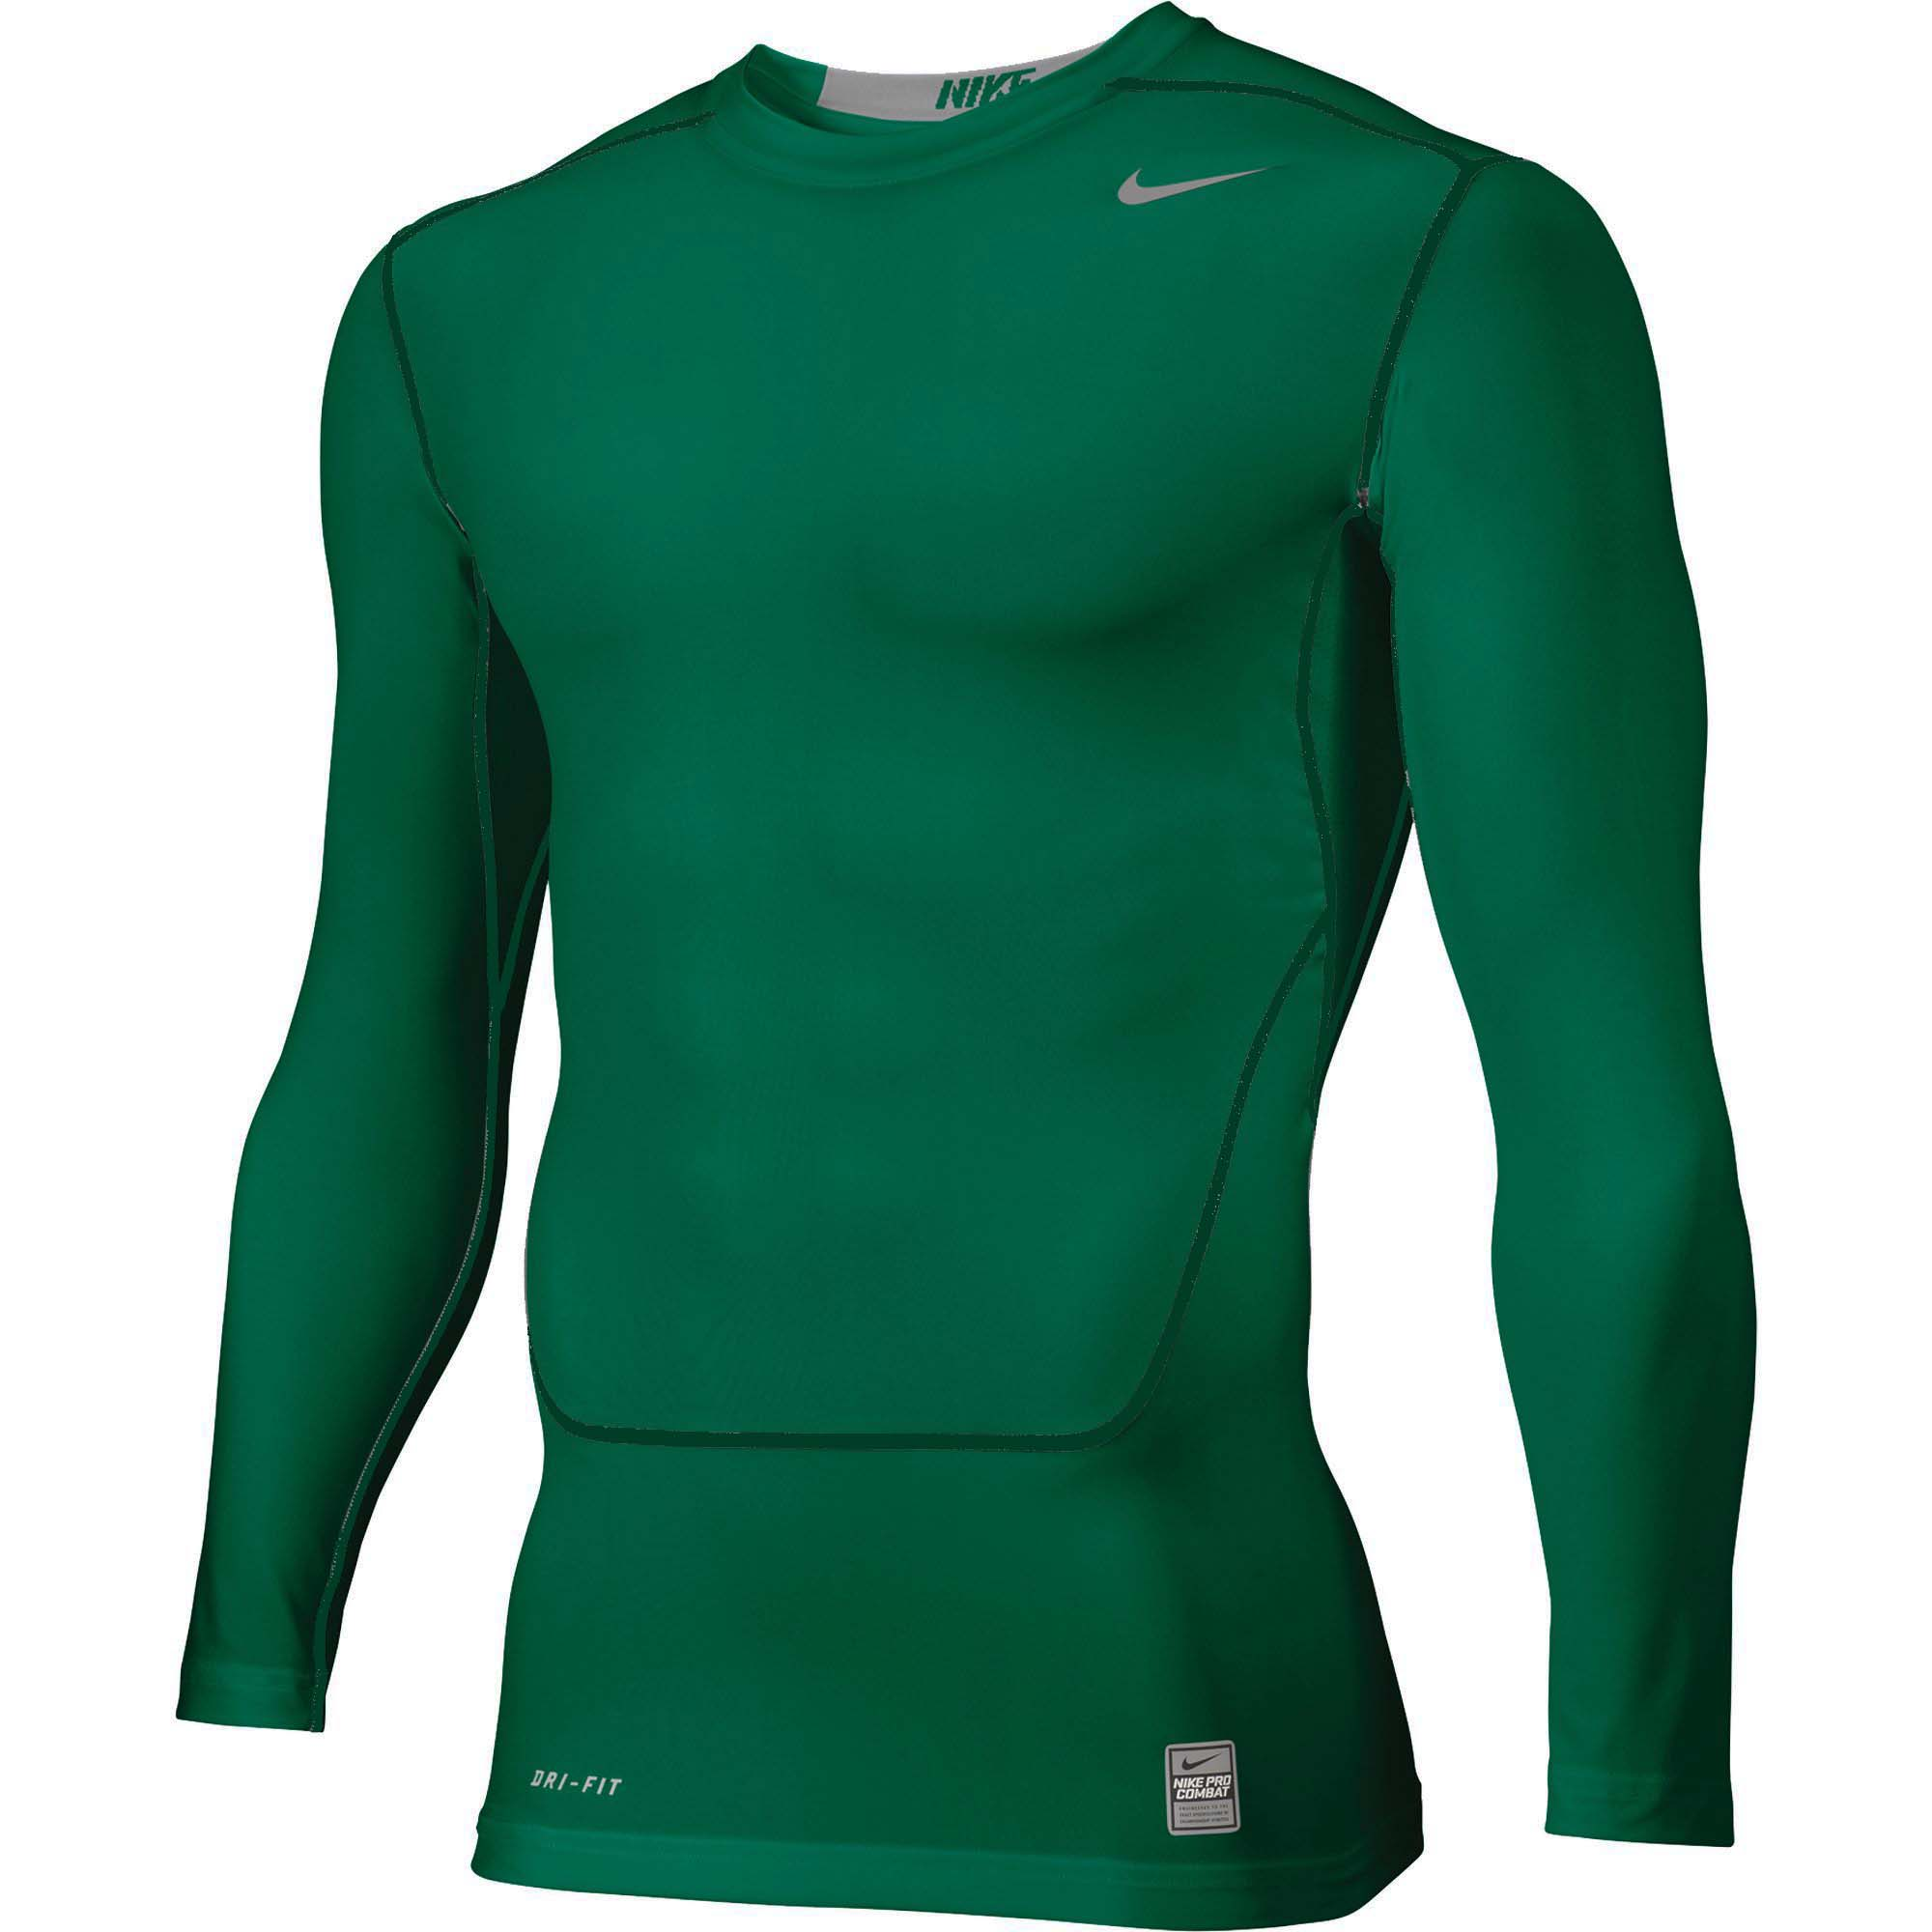 fb354bd4 Nike Men's Pro Combat NPC Core 2.0 LS Compression Top Shirt | eBay